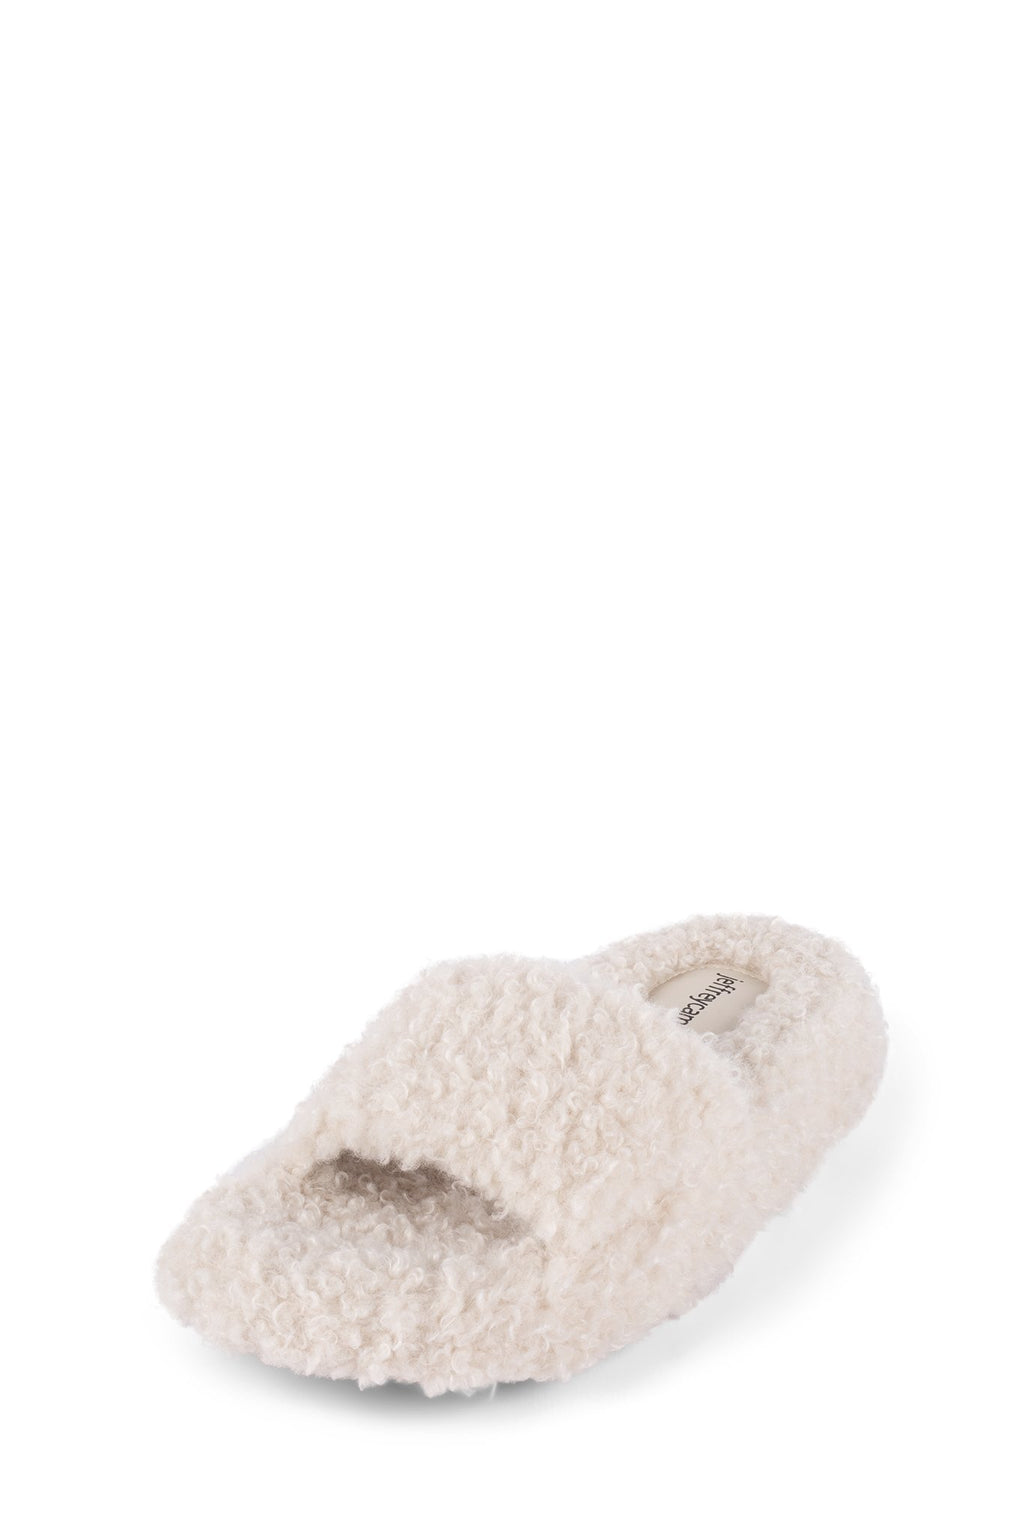 GOODNIGHT Slippers Jeffrey Campbell